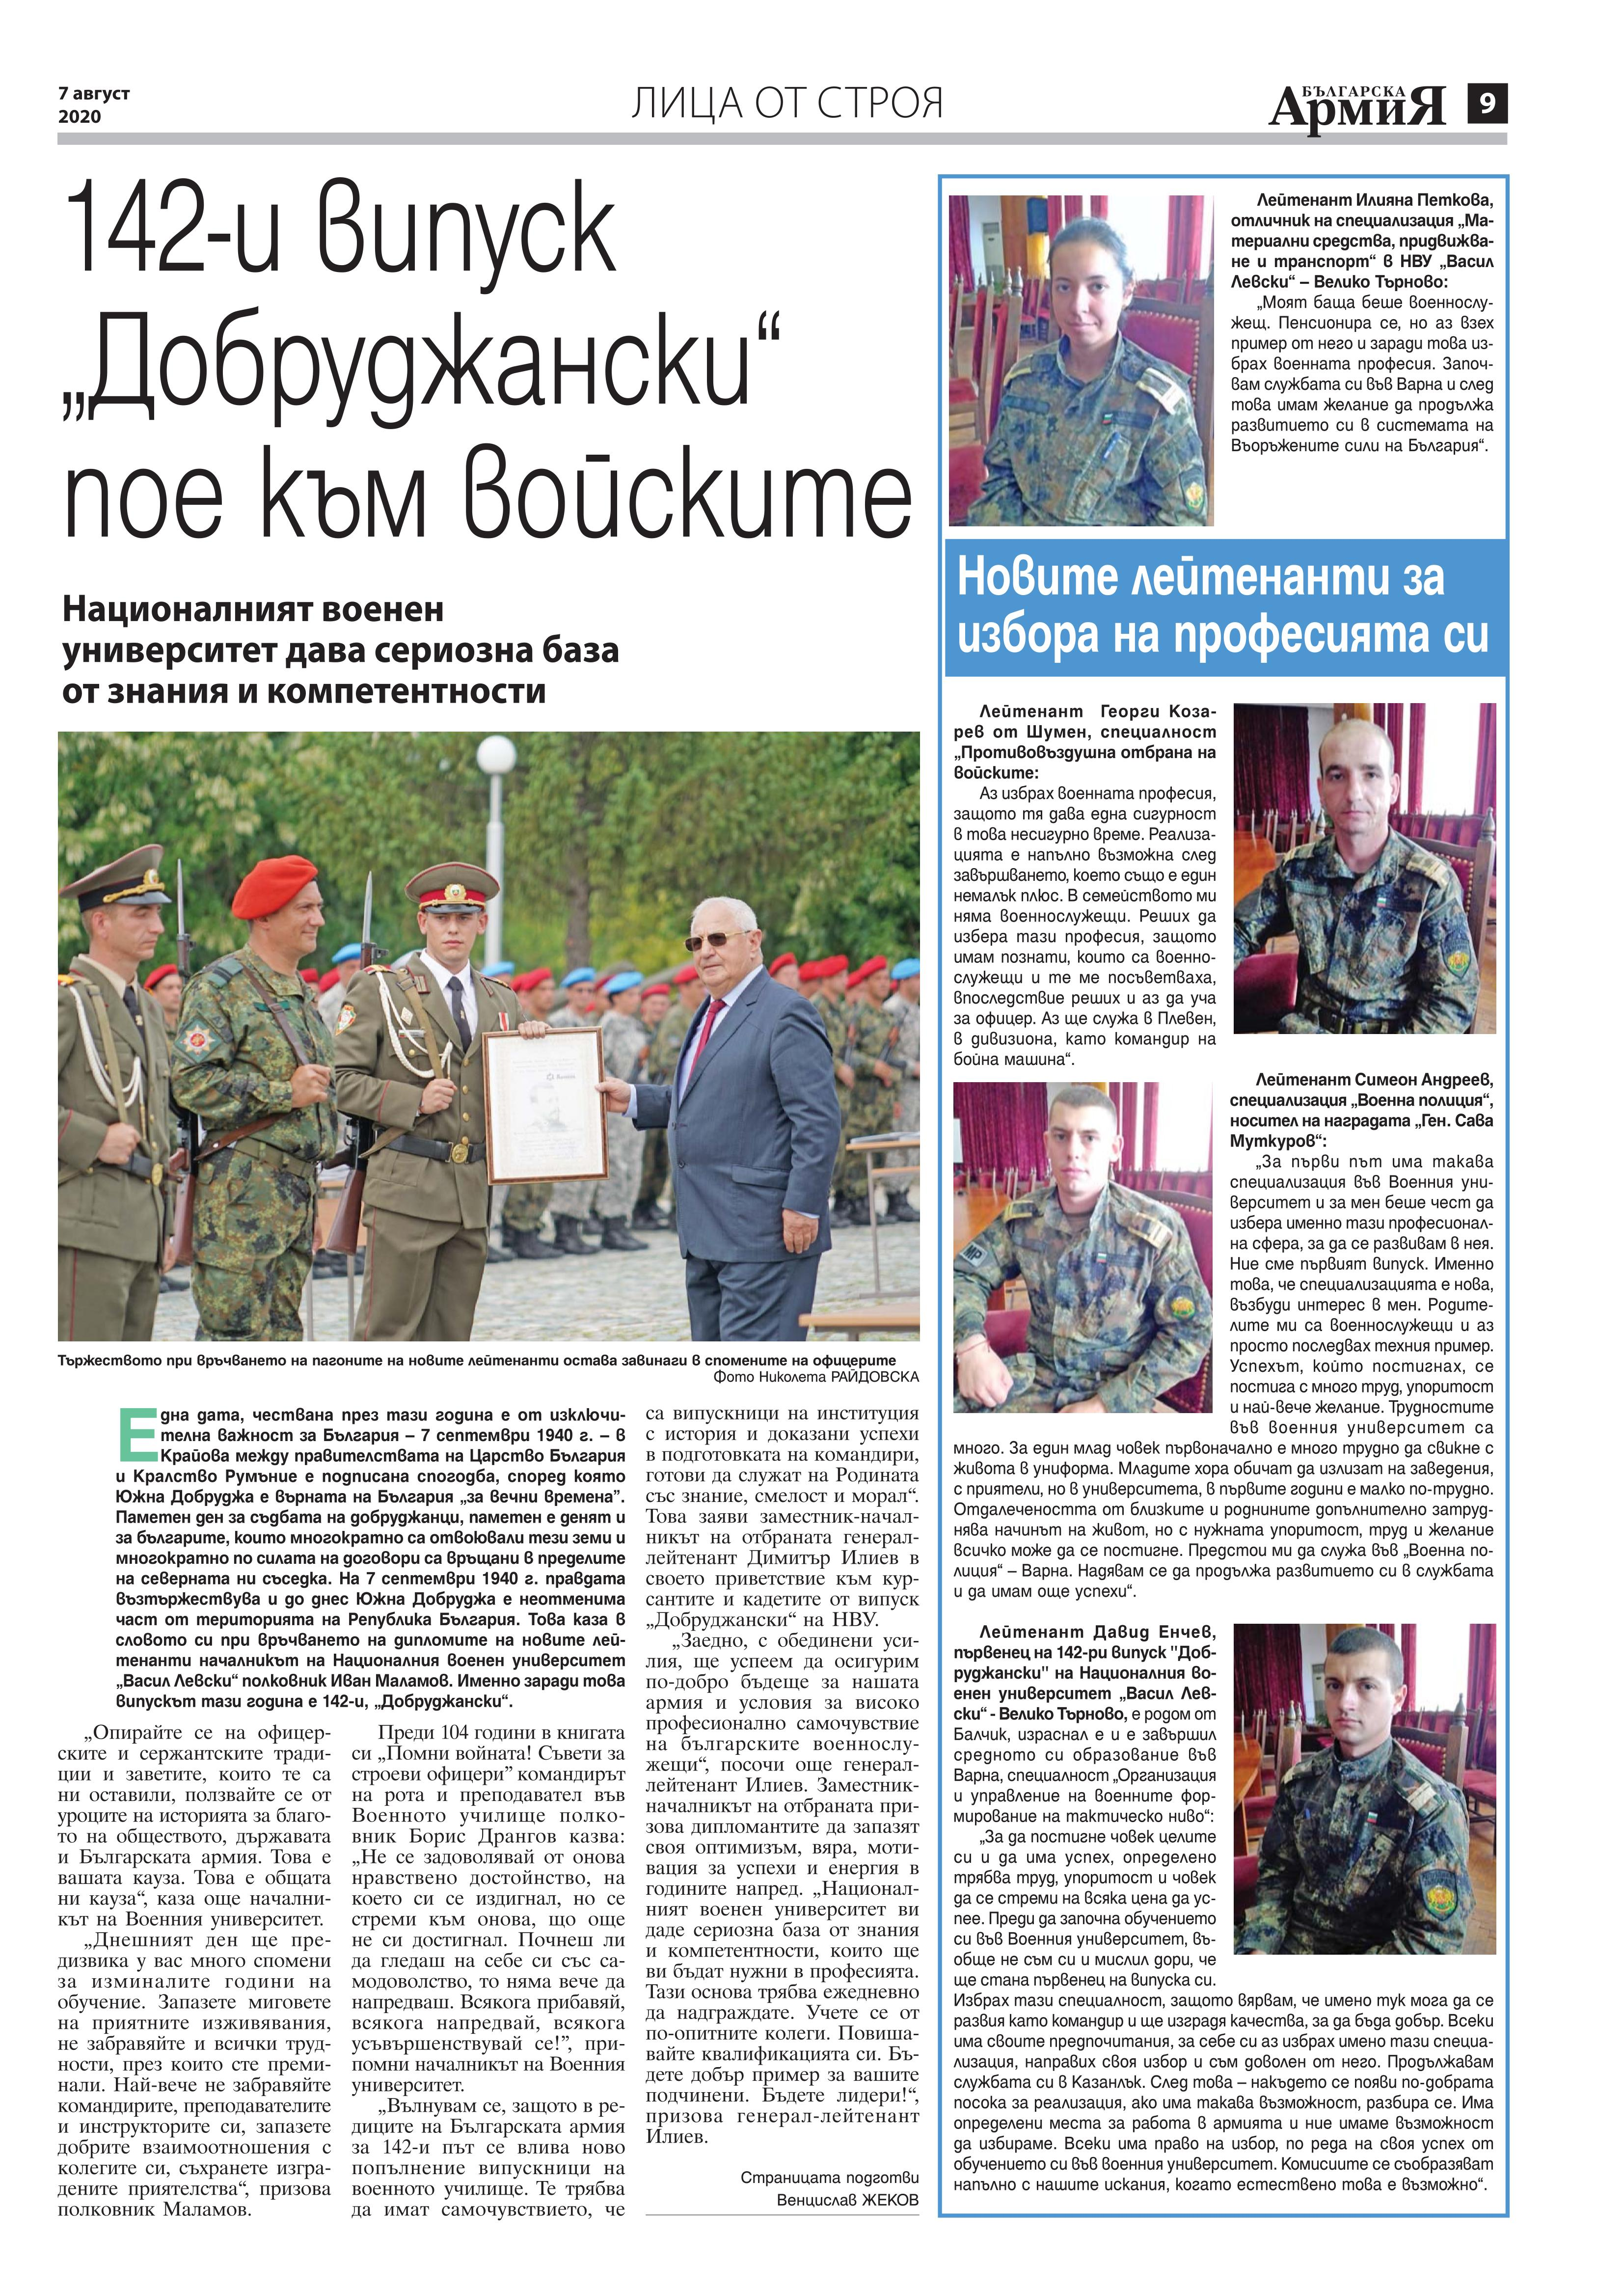 https://armymedia.bg/wp-content/uploads/2015/06/09.page1_-147.jpg